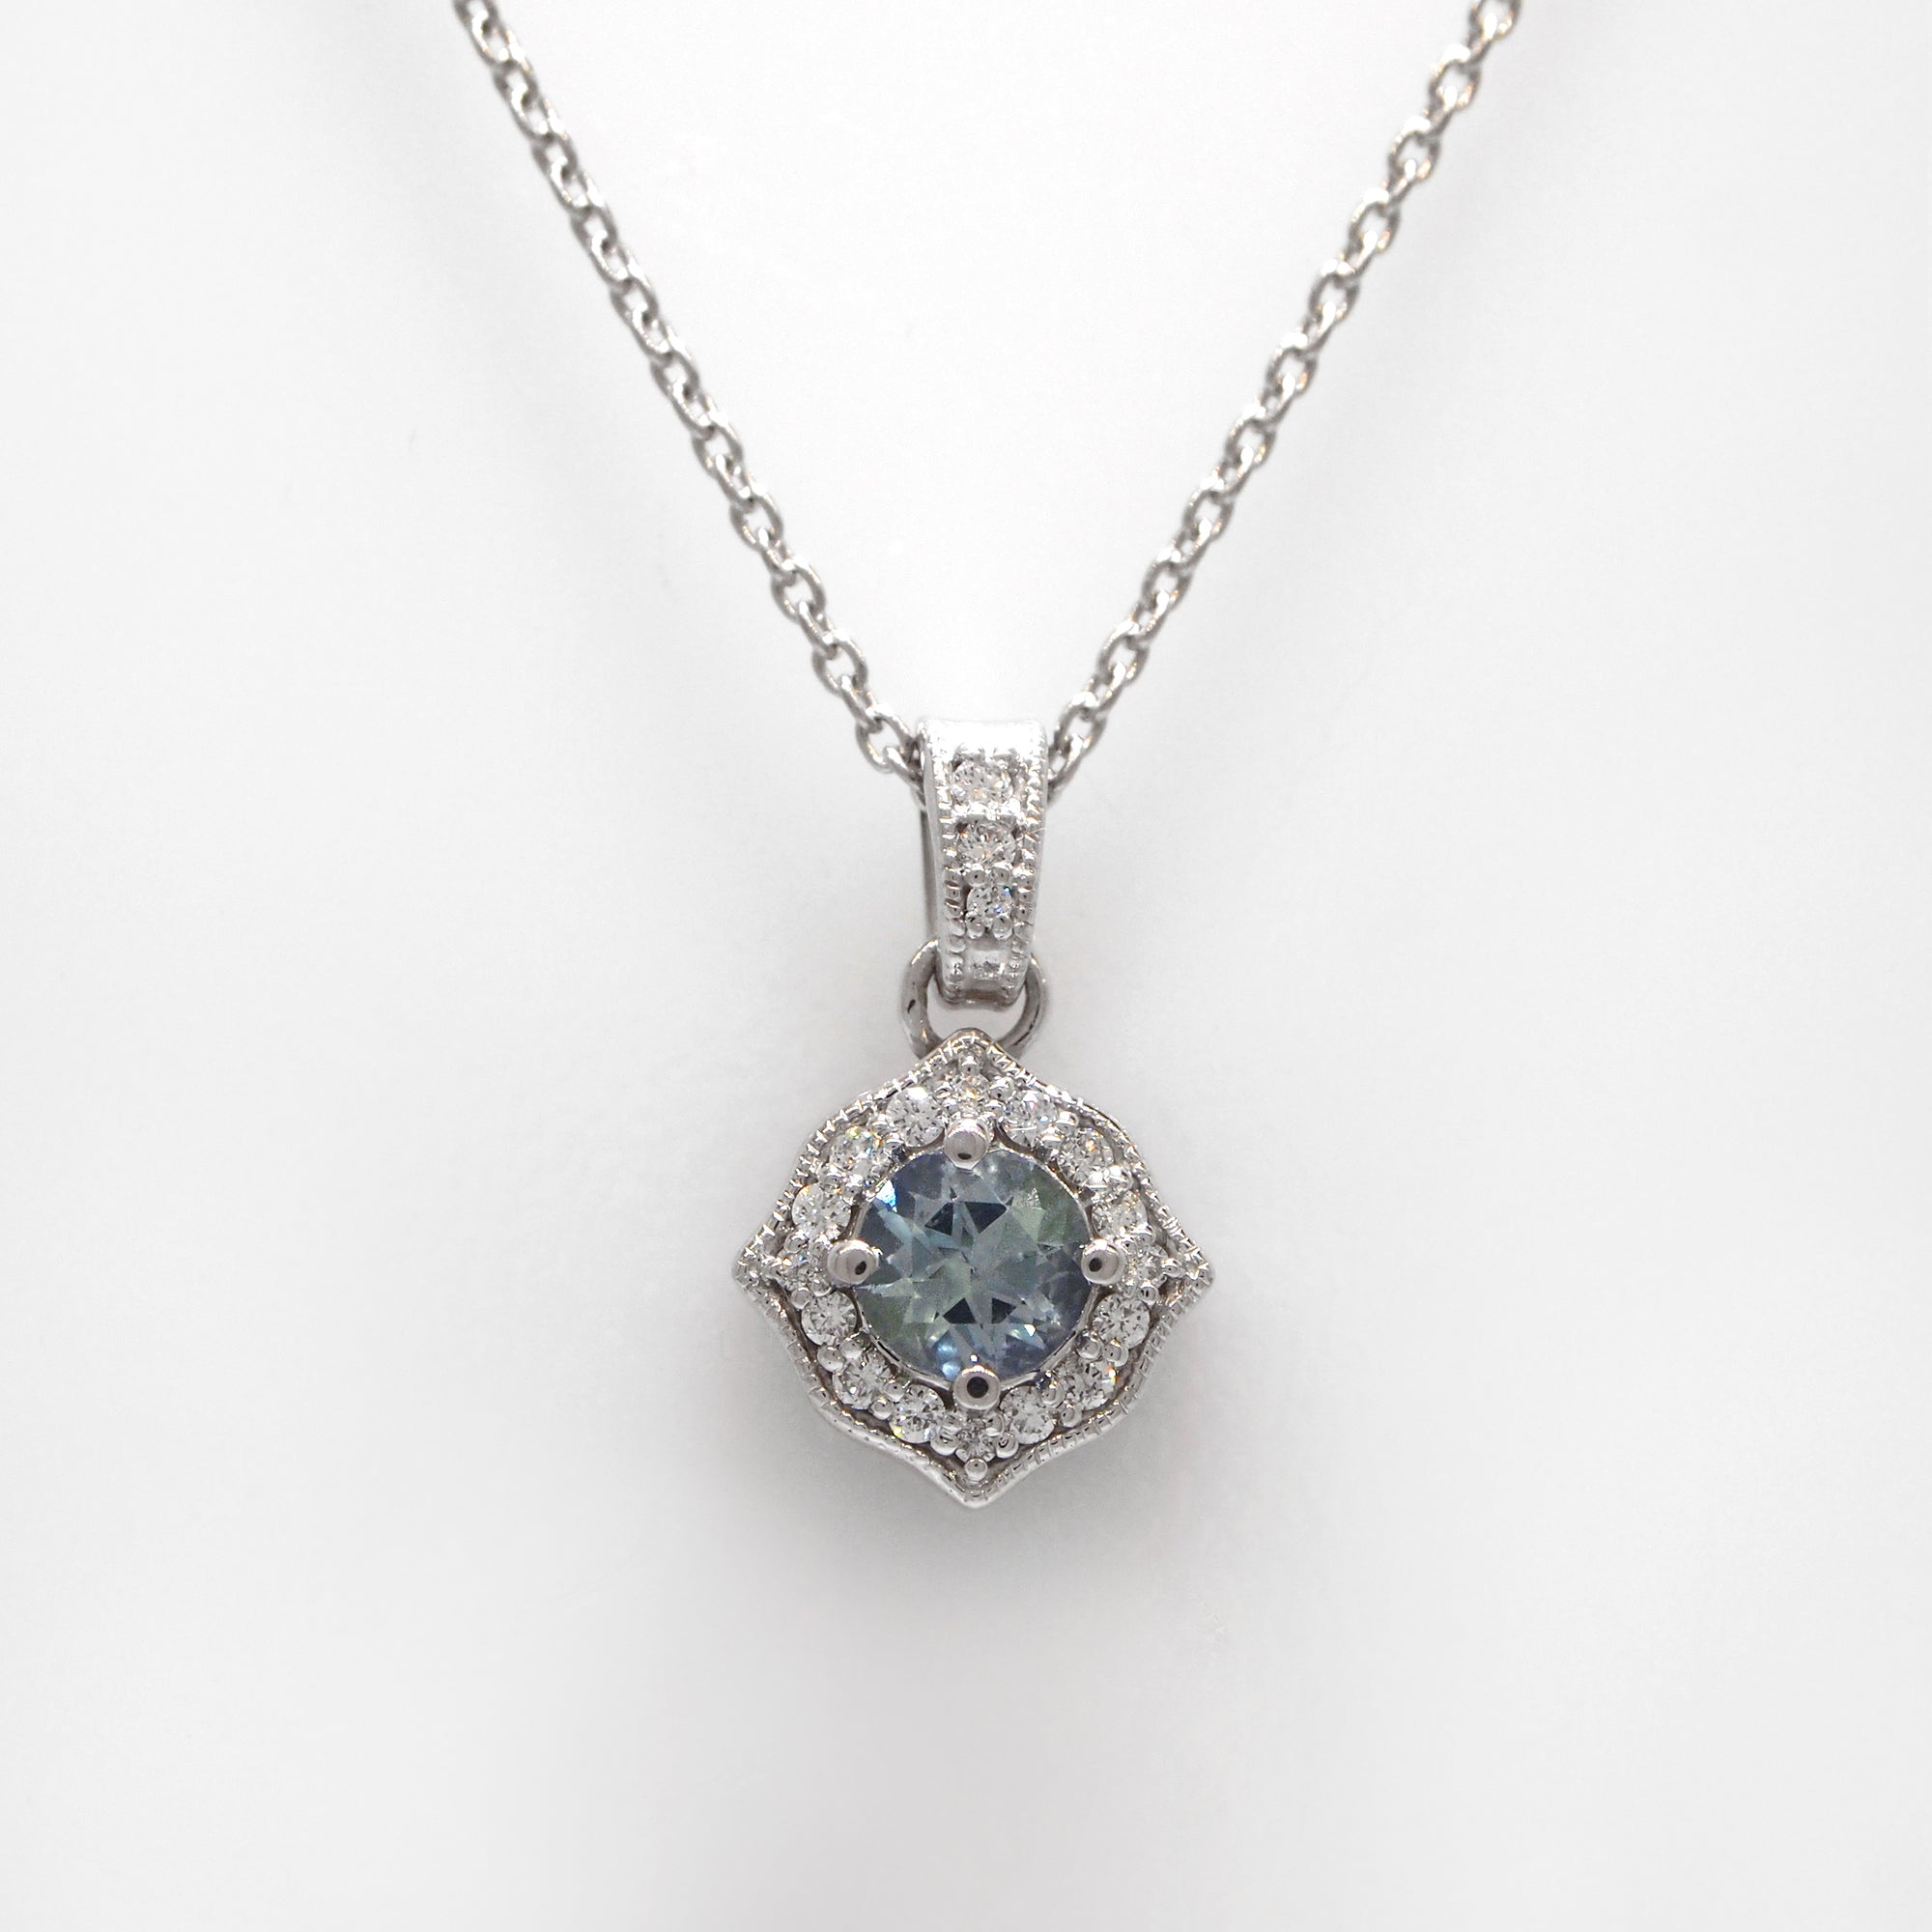 14K White Gold Natural Unheated Pastel Sapphire And Diamond Necklace